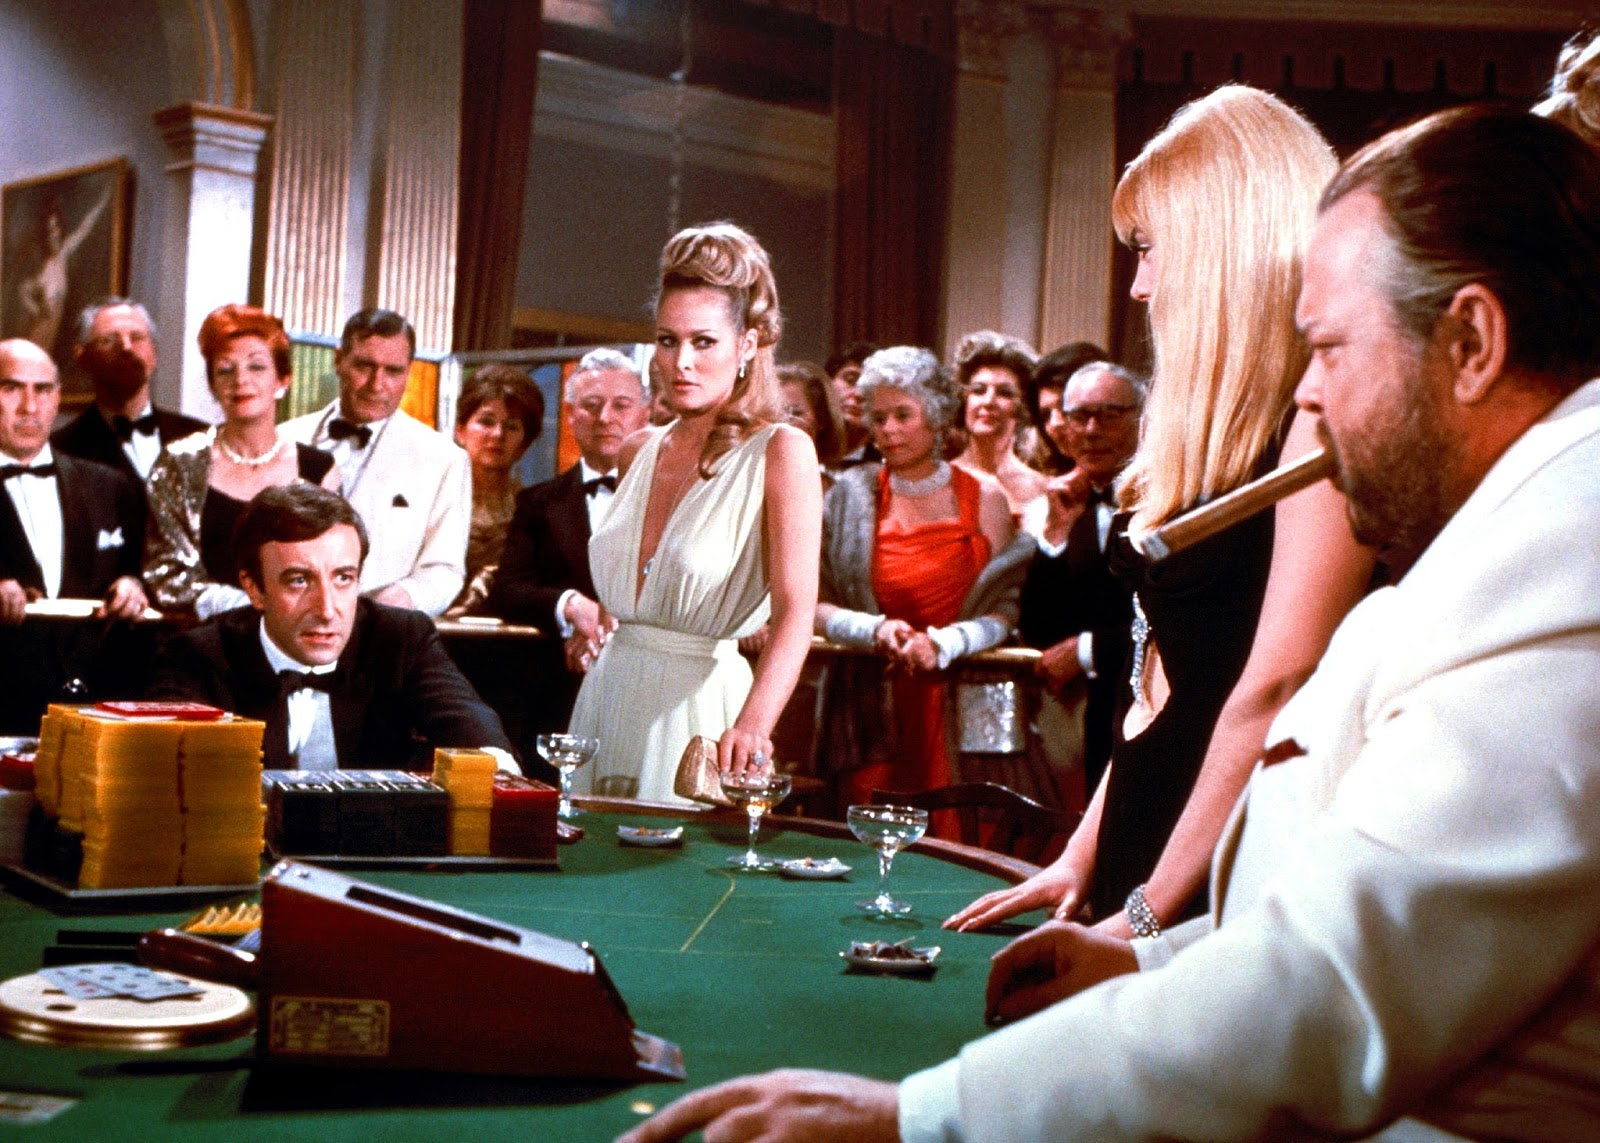 James Bond (Peter Sellers) faces down against Le Chiffre (Orson Welles) at the card table in the Casino Royale (1967)